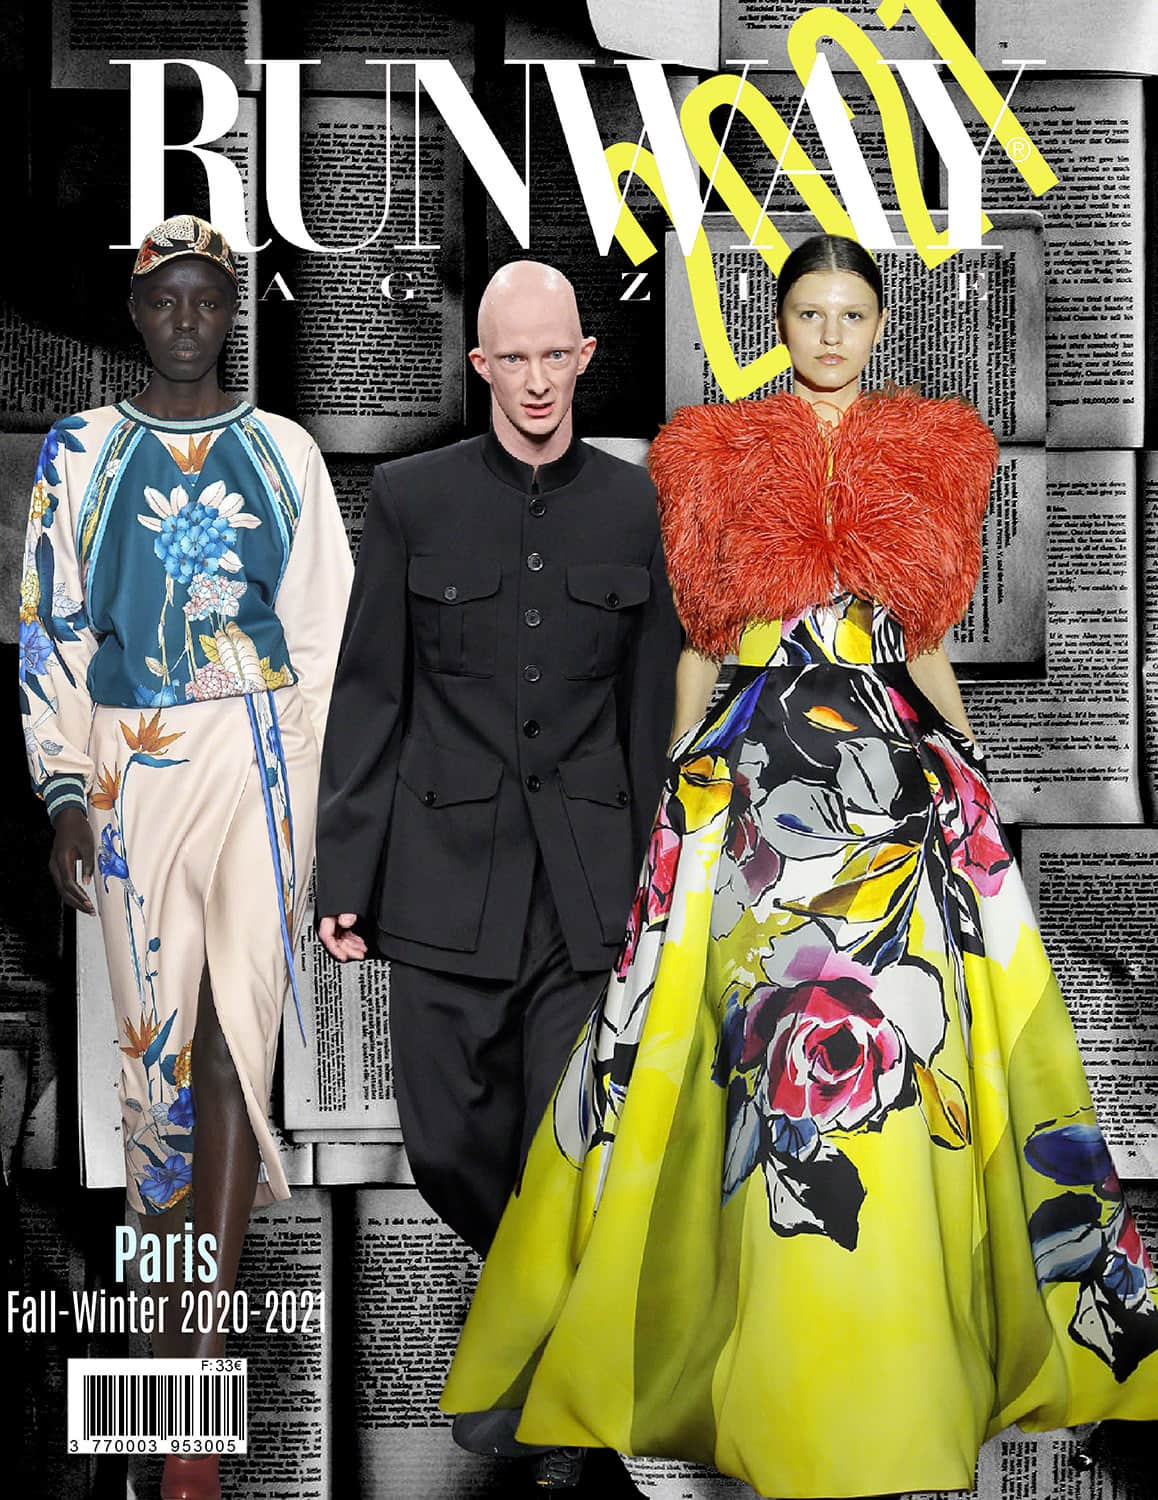 RUNWAY Magazine 2021 issue - Fall-Winter 2020-2021 Paris collections